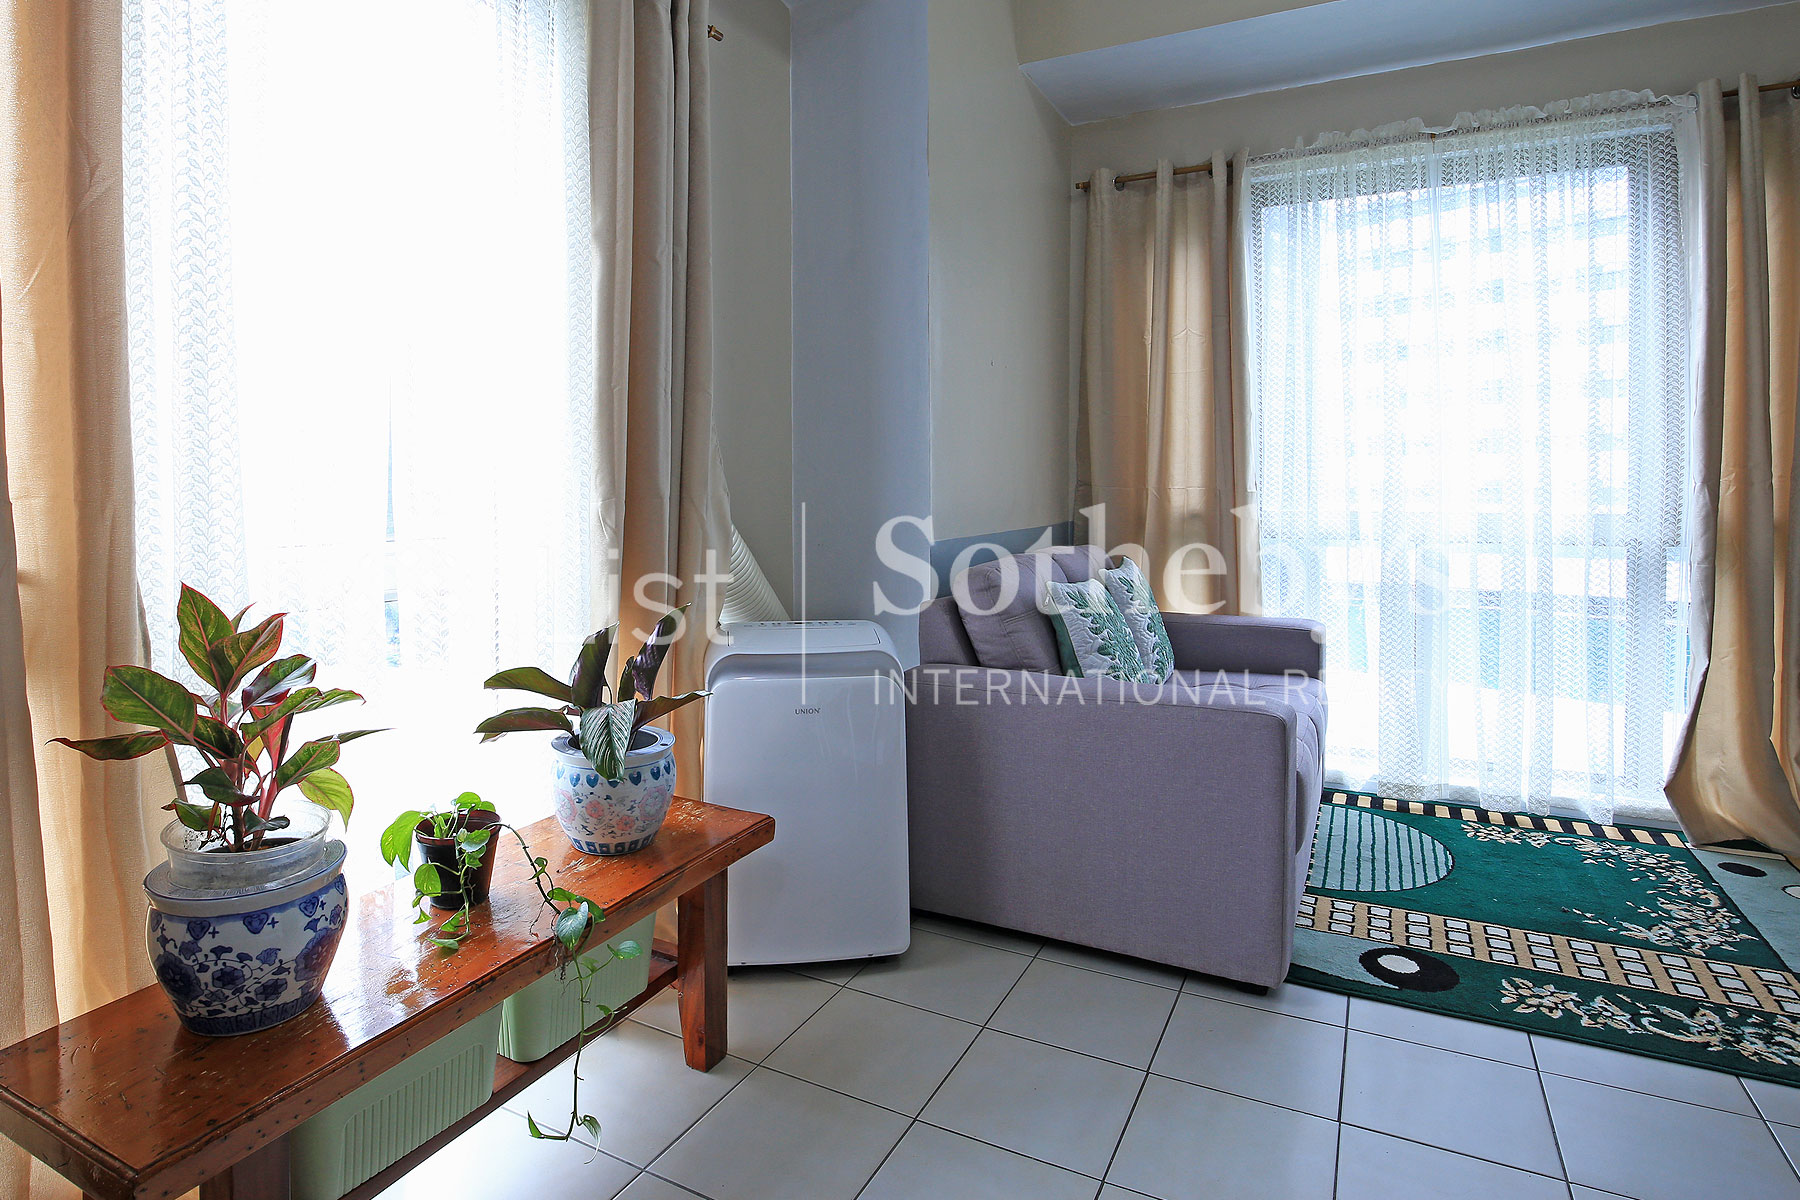 Additional photo for property listing at 1 Bedroom in Burgos Circle  Taguig City, Philippines 1634 Philippines